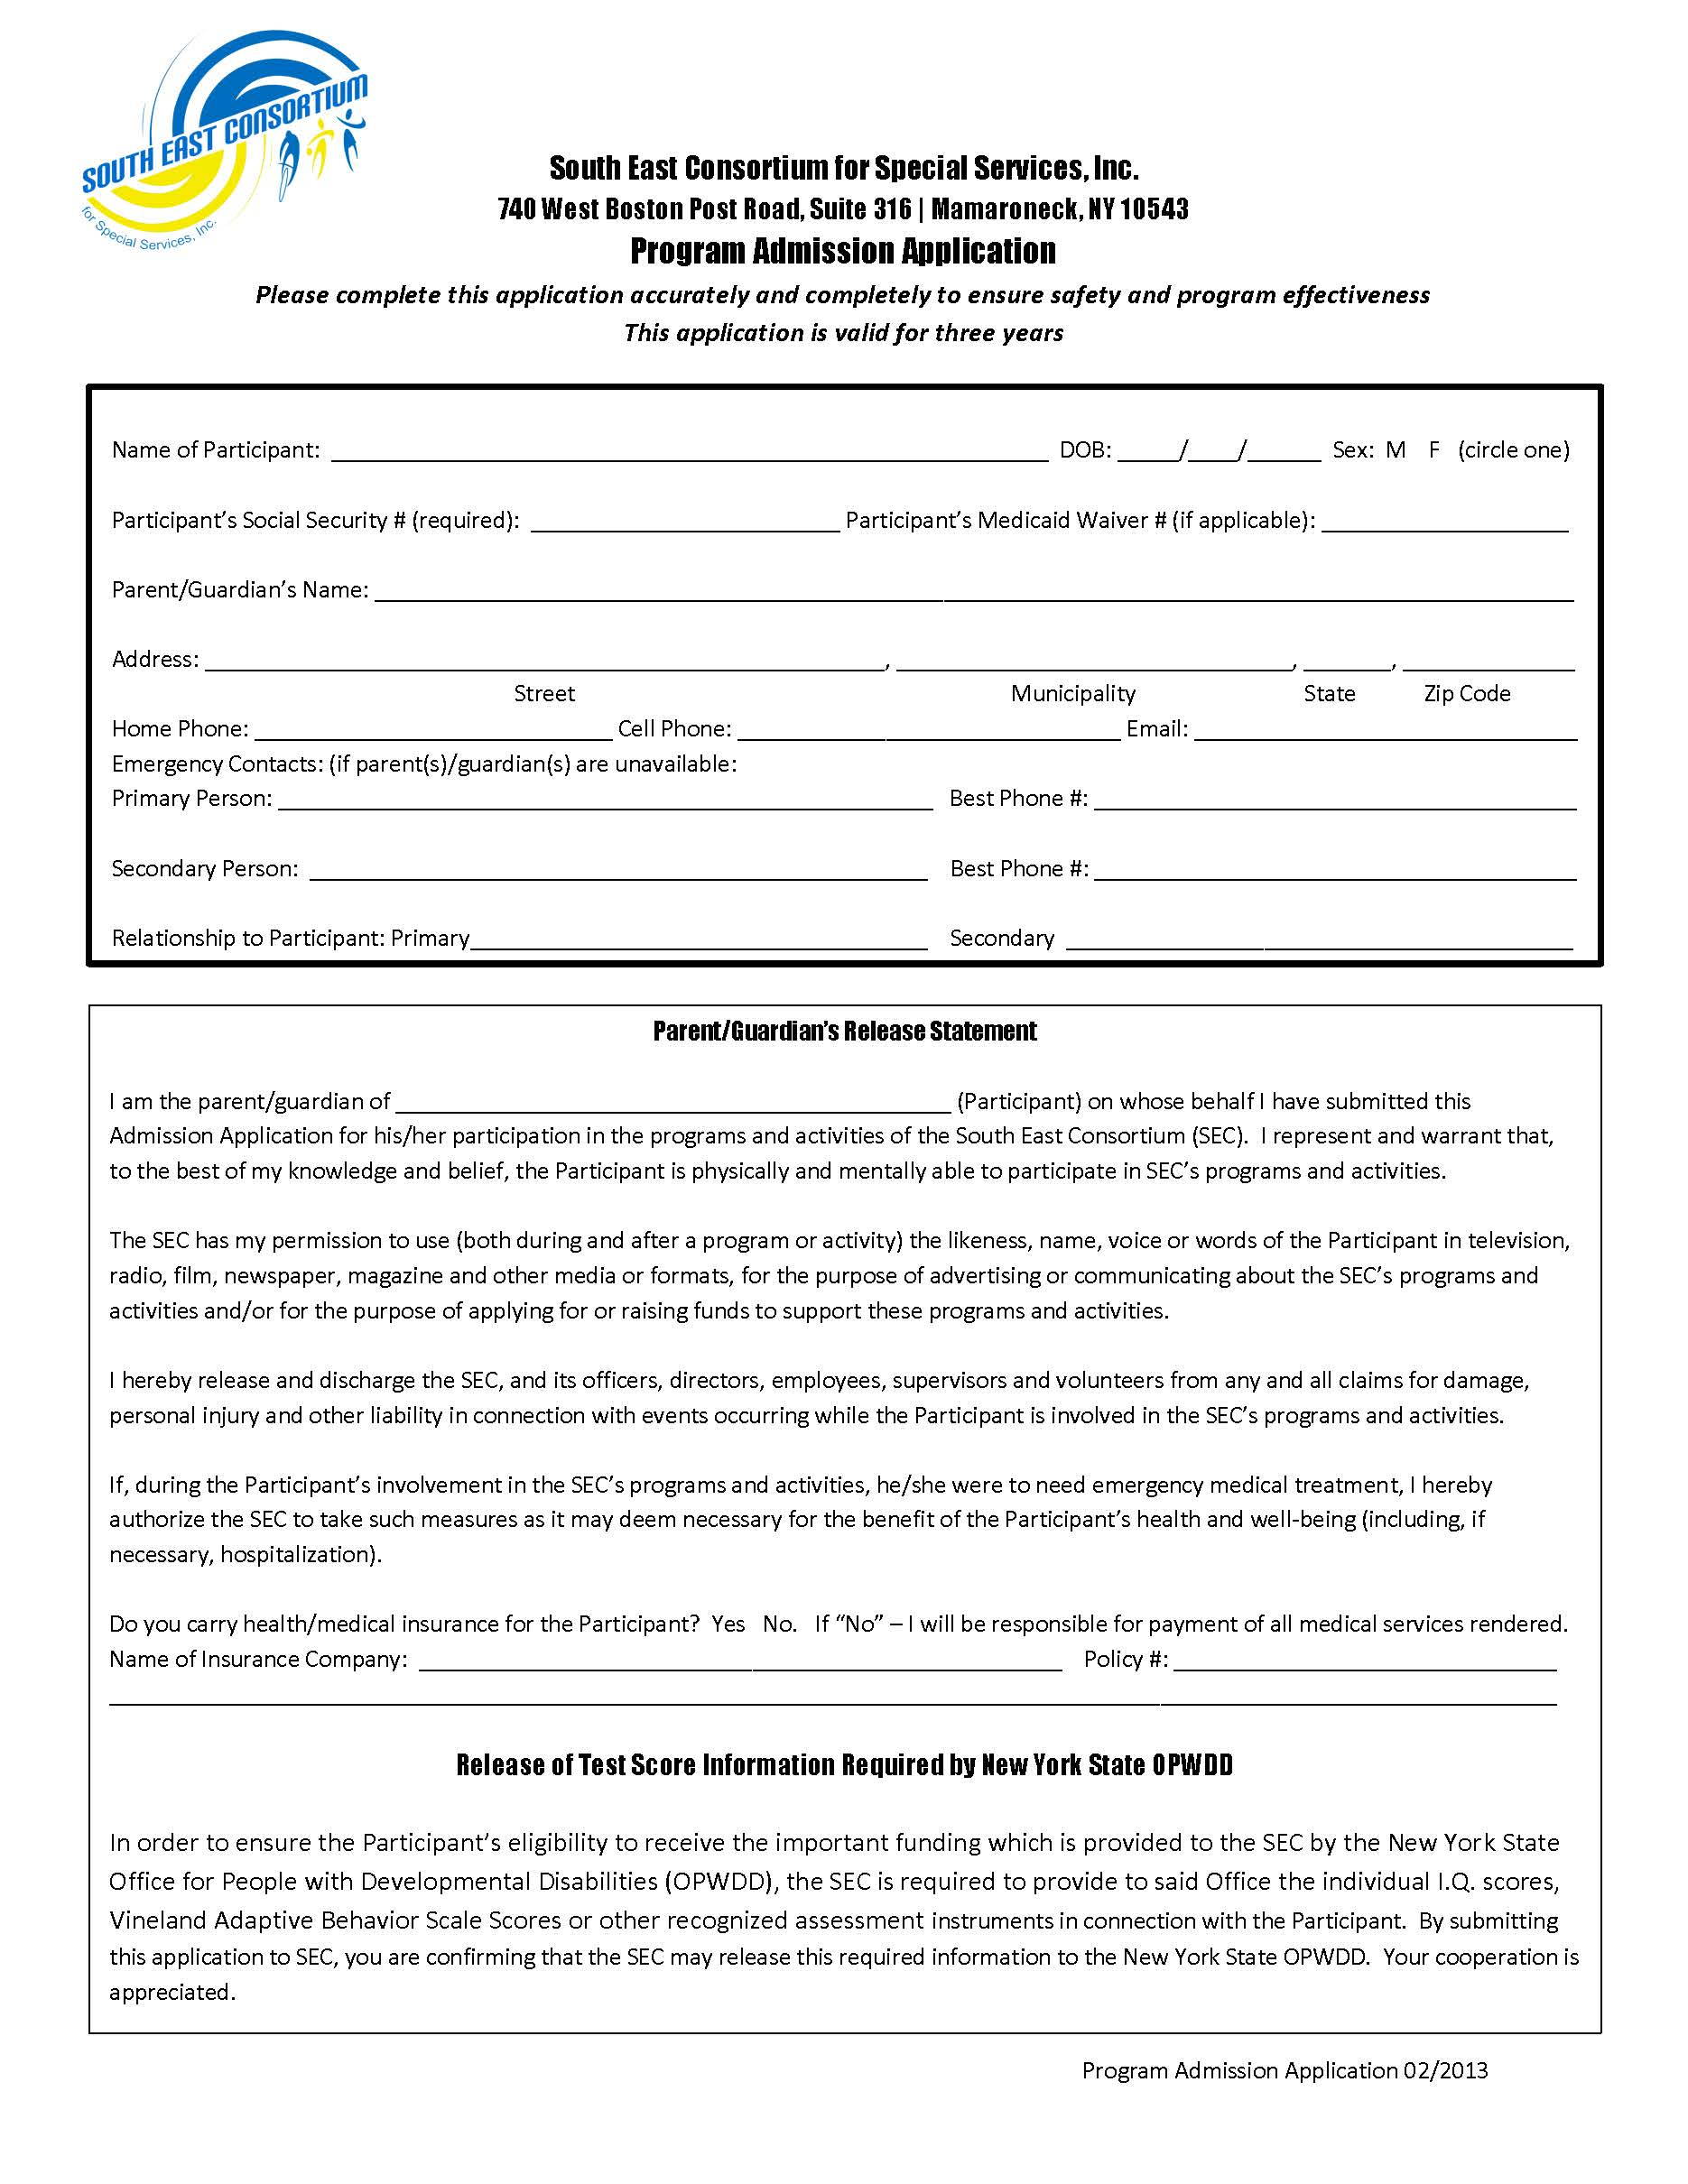 Admissions Application Form